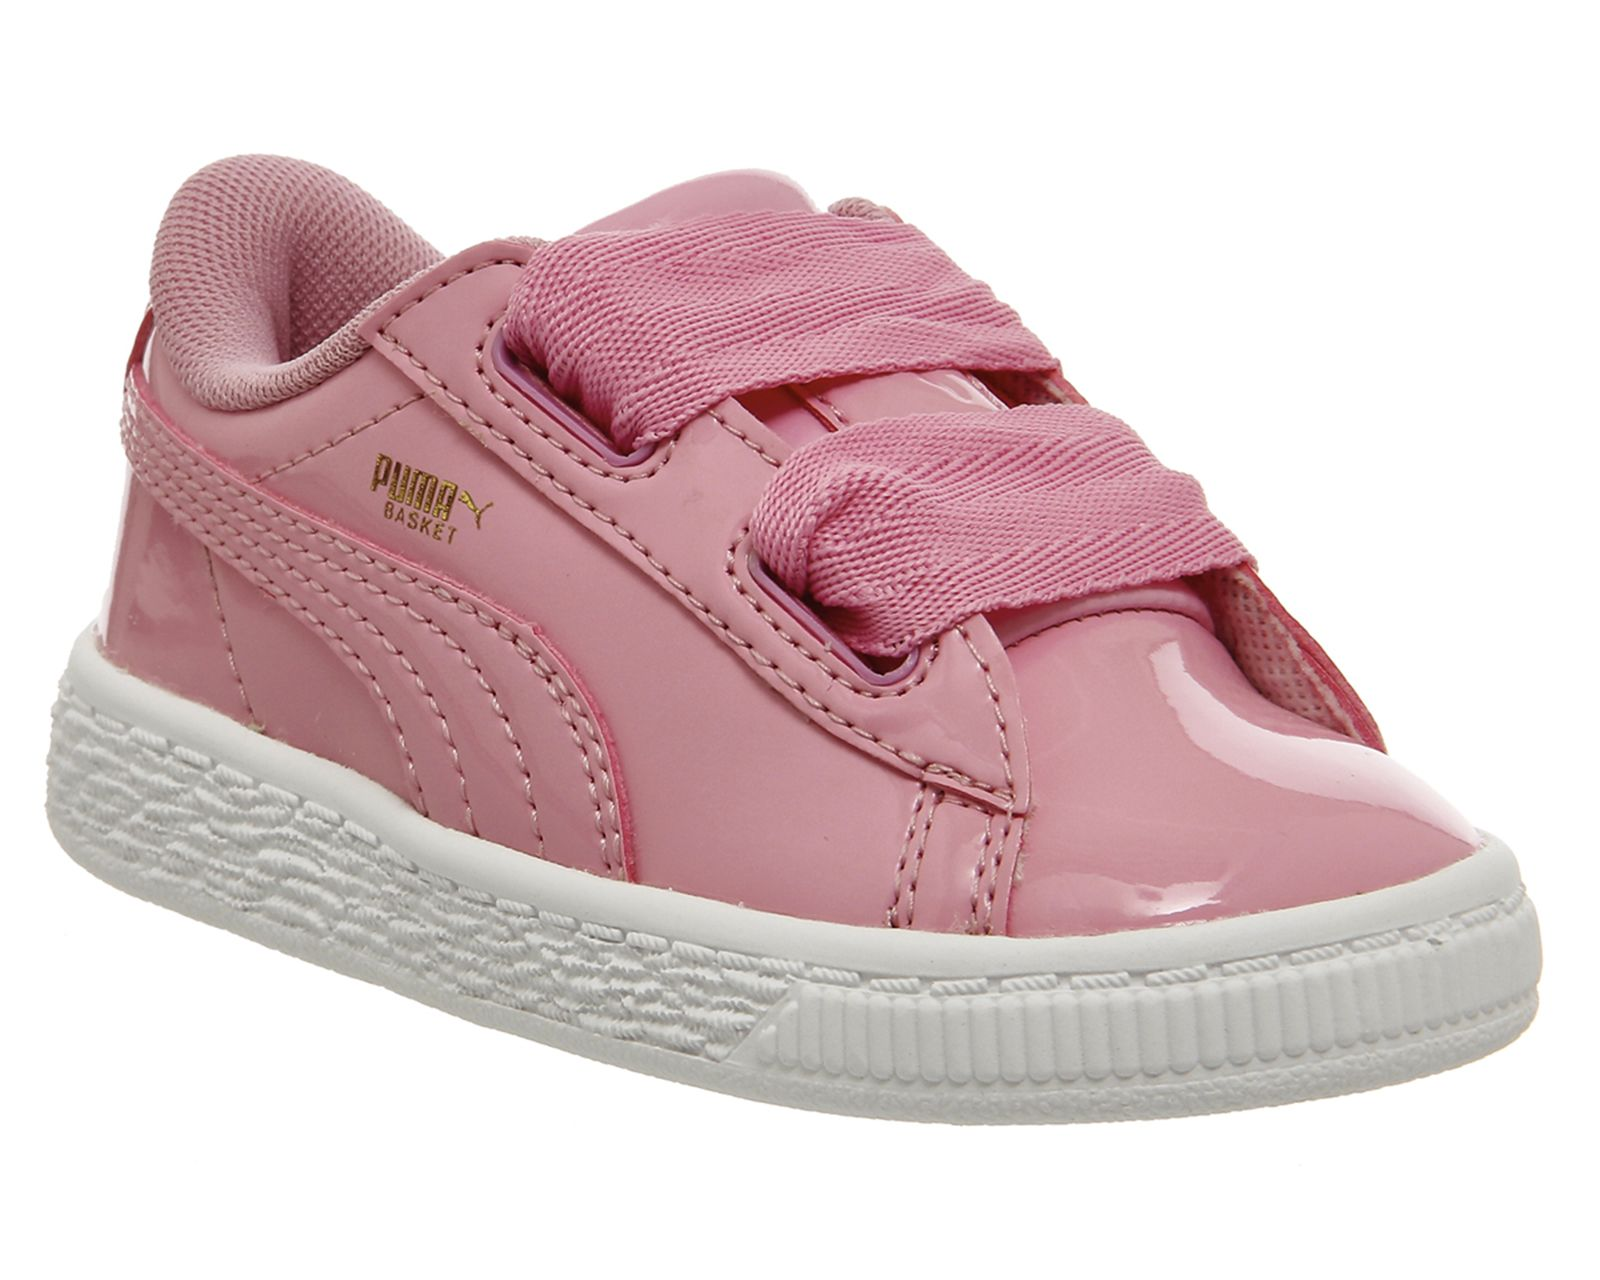 9e2c9c86cfb Puma Basket Heart Inf Prism Pink Patent Puma Basket Heart, Kid Shoes, Baby  Shoes